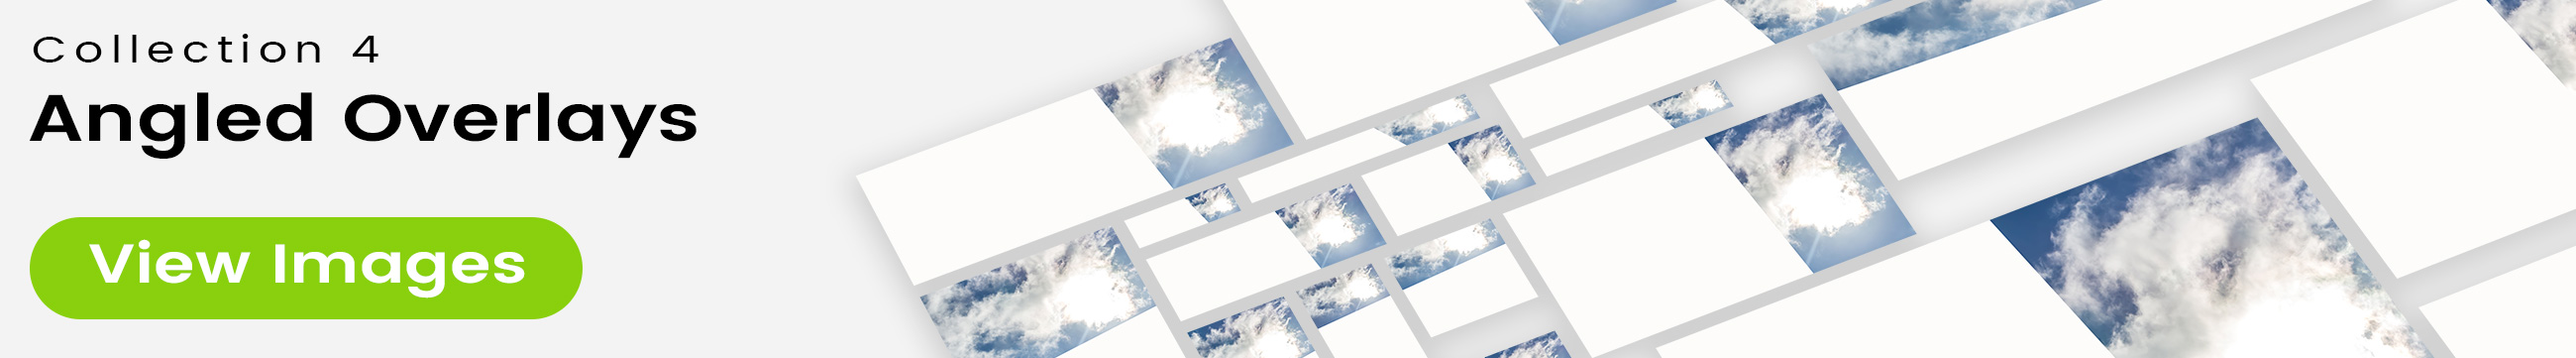 See 25 bonus images included with clouds stock image 9467. Collection 4 of 4 features an angled overlay design customized with a color that complements each photo.